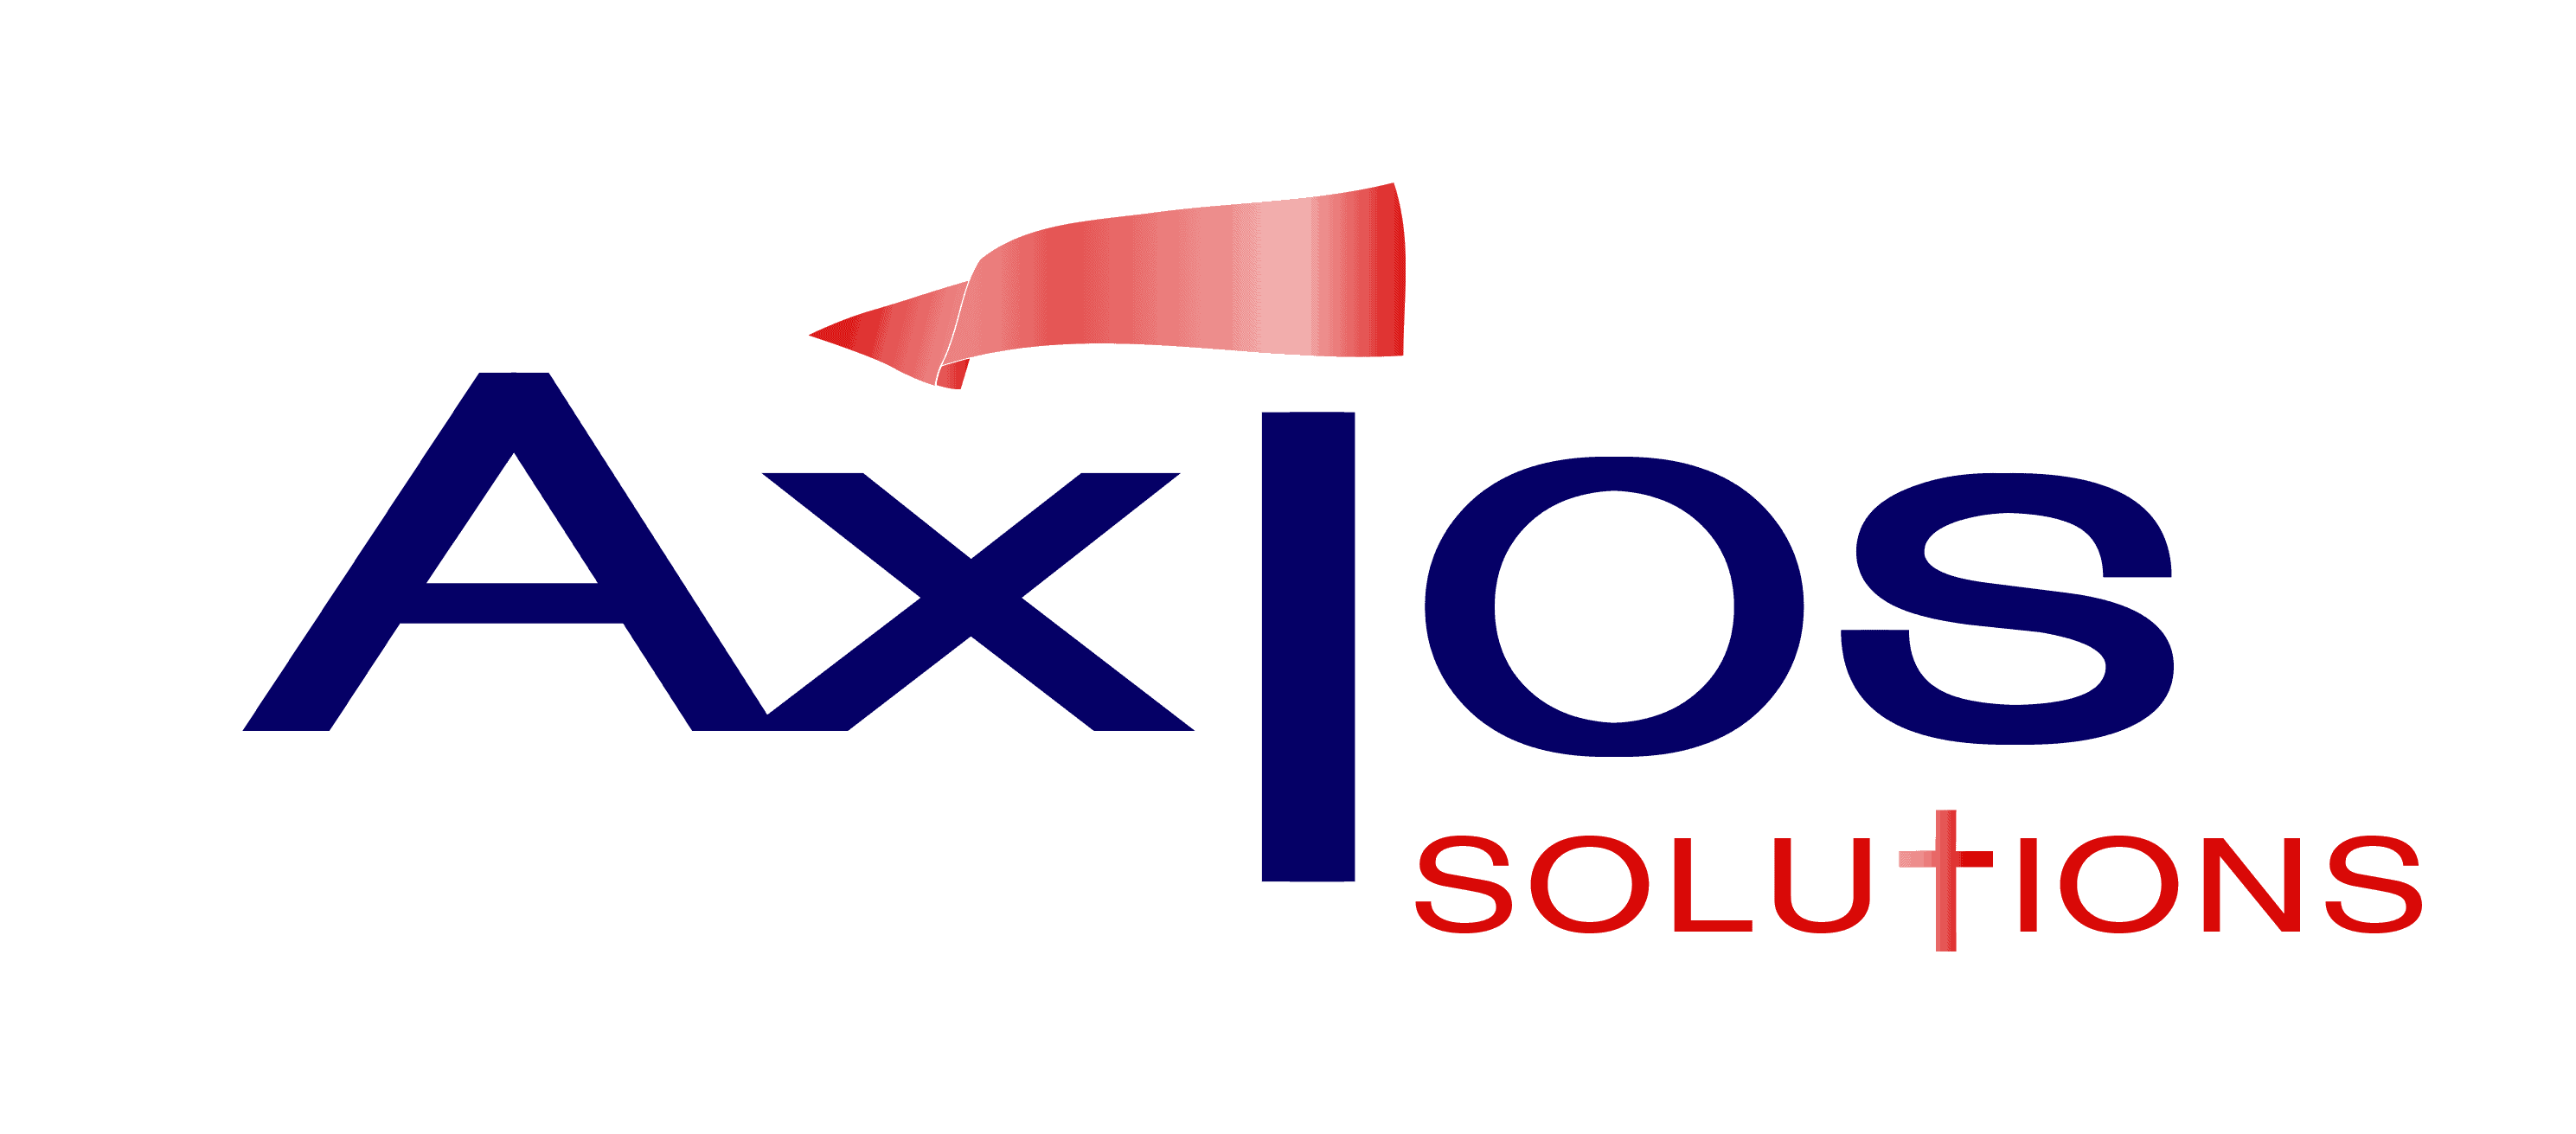 Axios Solutions Logo - updated